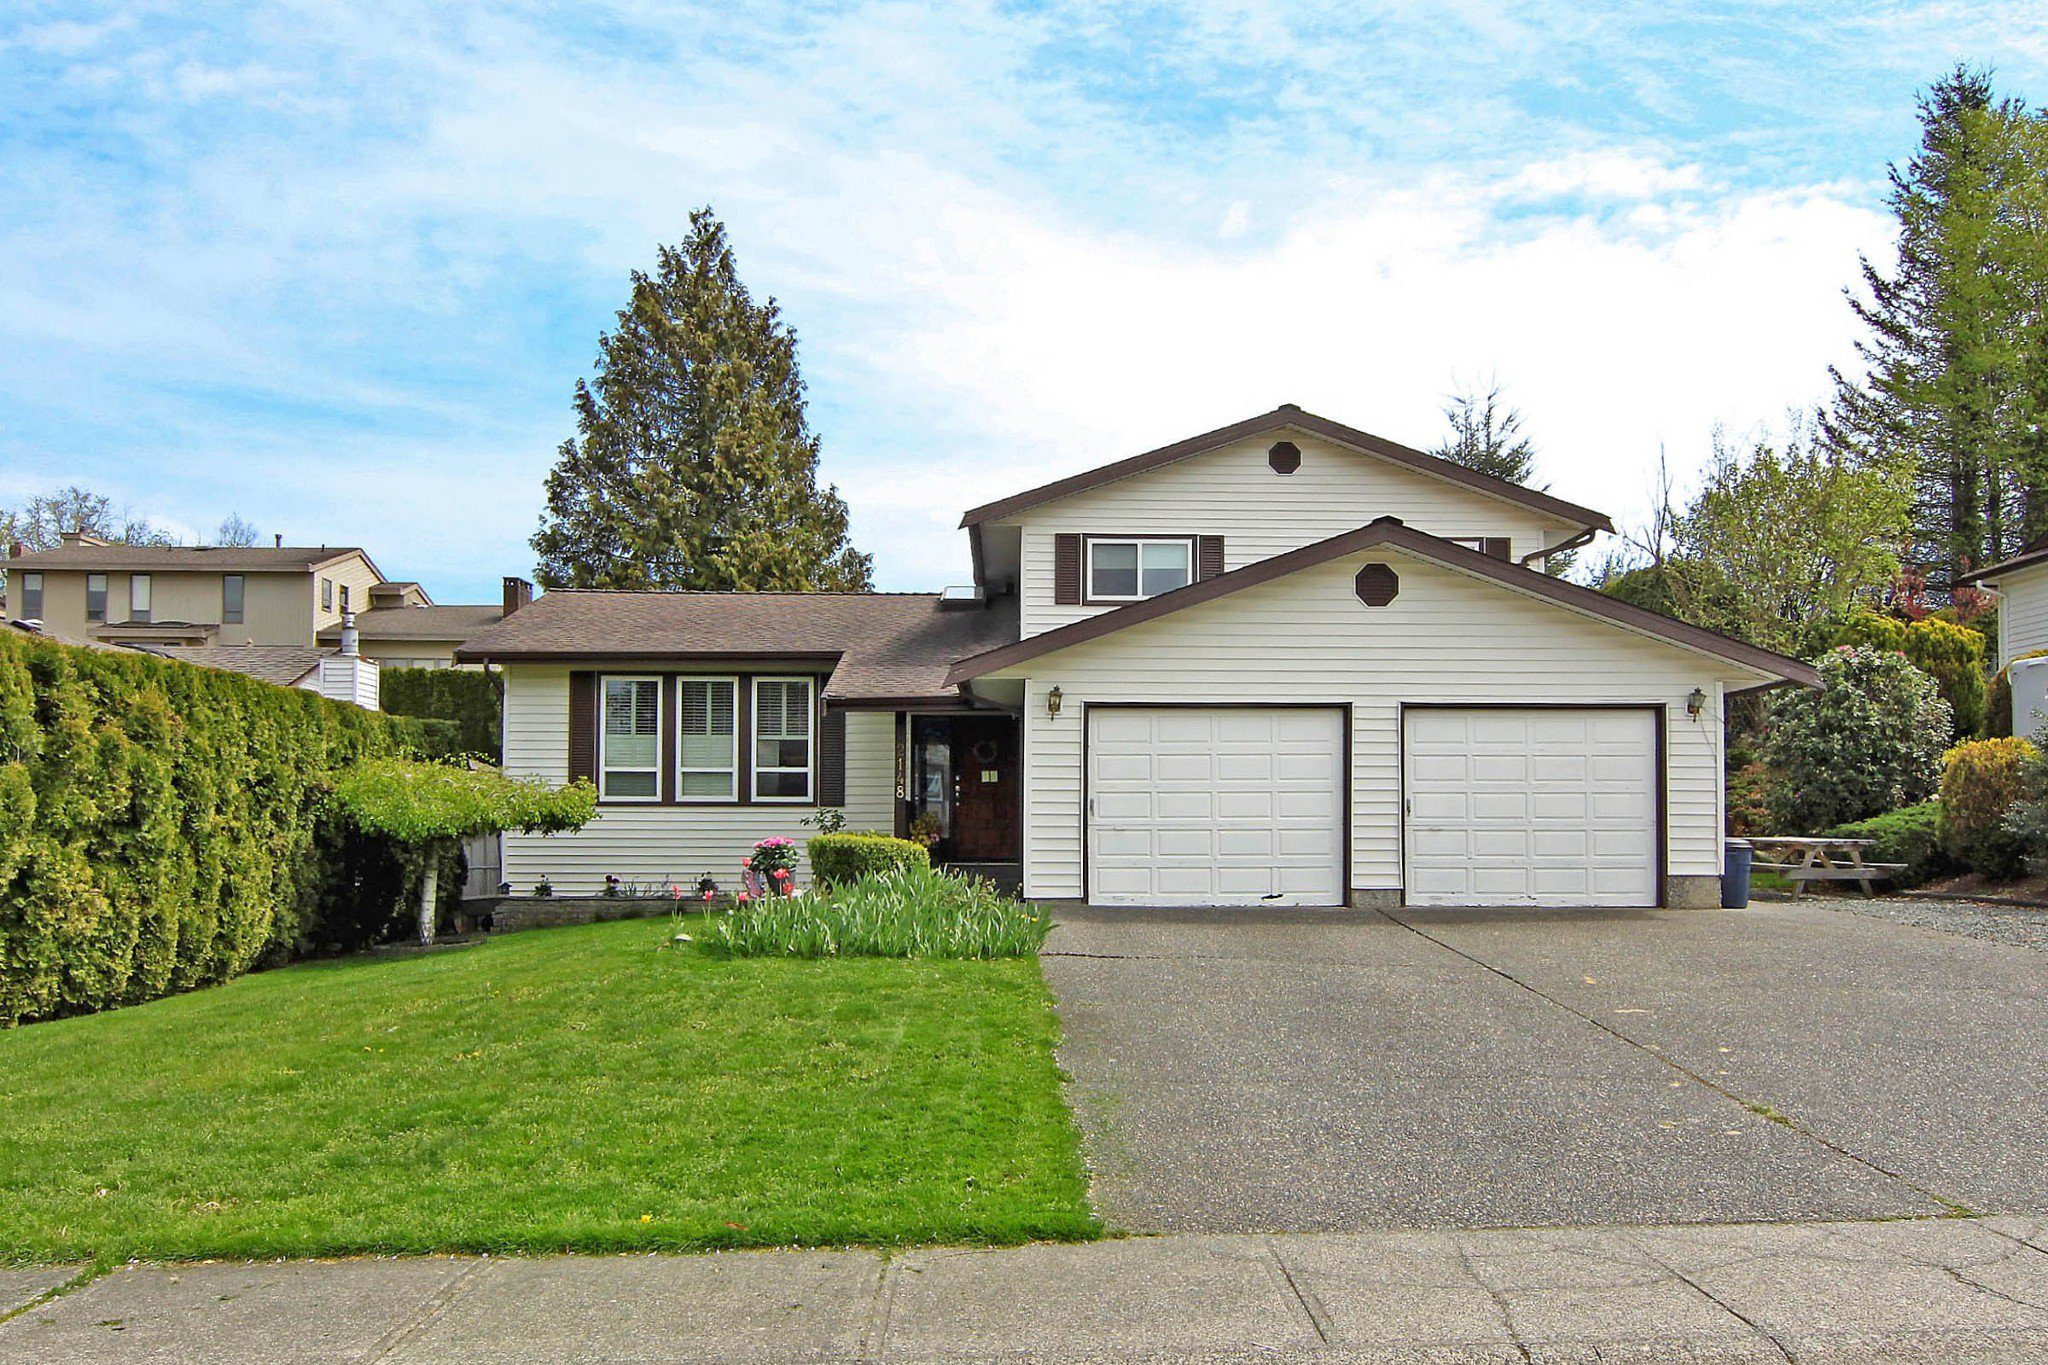 Main Photo: 2148 ESSEX Drive in Abbotsford: Abbotsford East House for sale : MLS®# R2363230